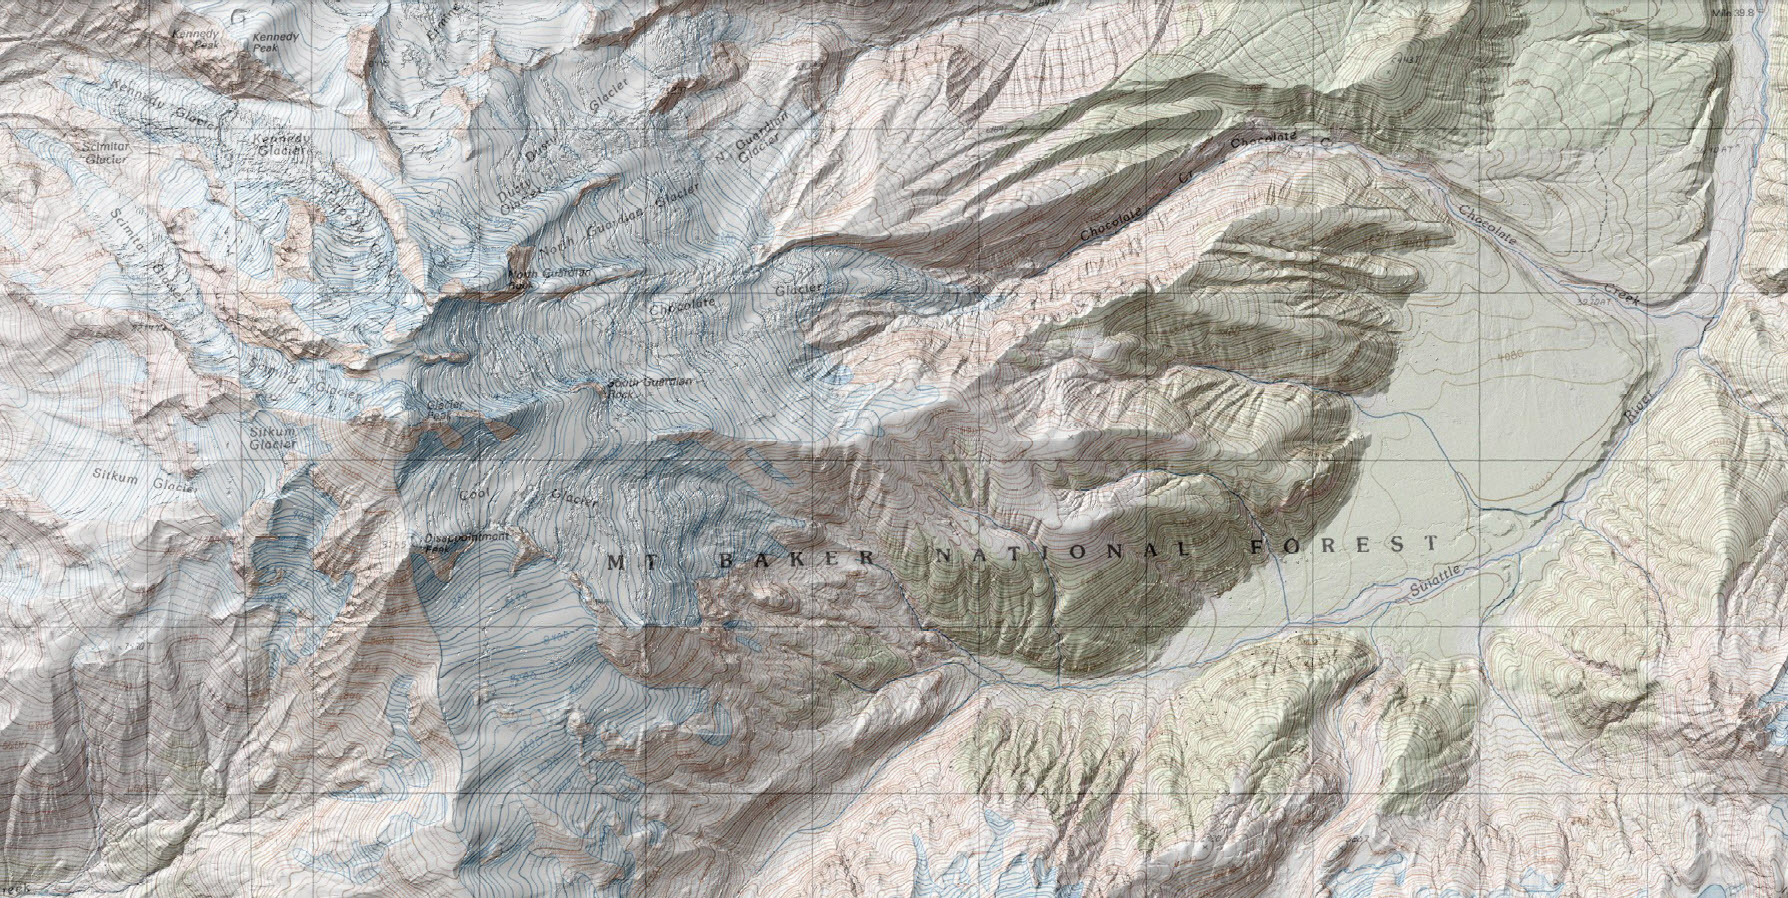 Map shows 1-m lidar-derived digital elevation model (DEM) data superimposed on a 1:24,000 USGS topographic map of the center of the lidar collection area for Glacier Peak. Glacier Peak's high altitude, steep terrain, and extremely dense forest cover make lidar collection perhaps the most difficult in the conterminous United States. The lidar data are being used for geologic mapping to reveal volcanic deposits on the mountain as well as in steep, forested river drainages. Elevation models derived from the lidar data will be used for computational modeling of volcano hazards, such as lahars (volcanic mudflows) that could travel downstream and affect nearby populated areas.